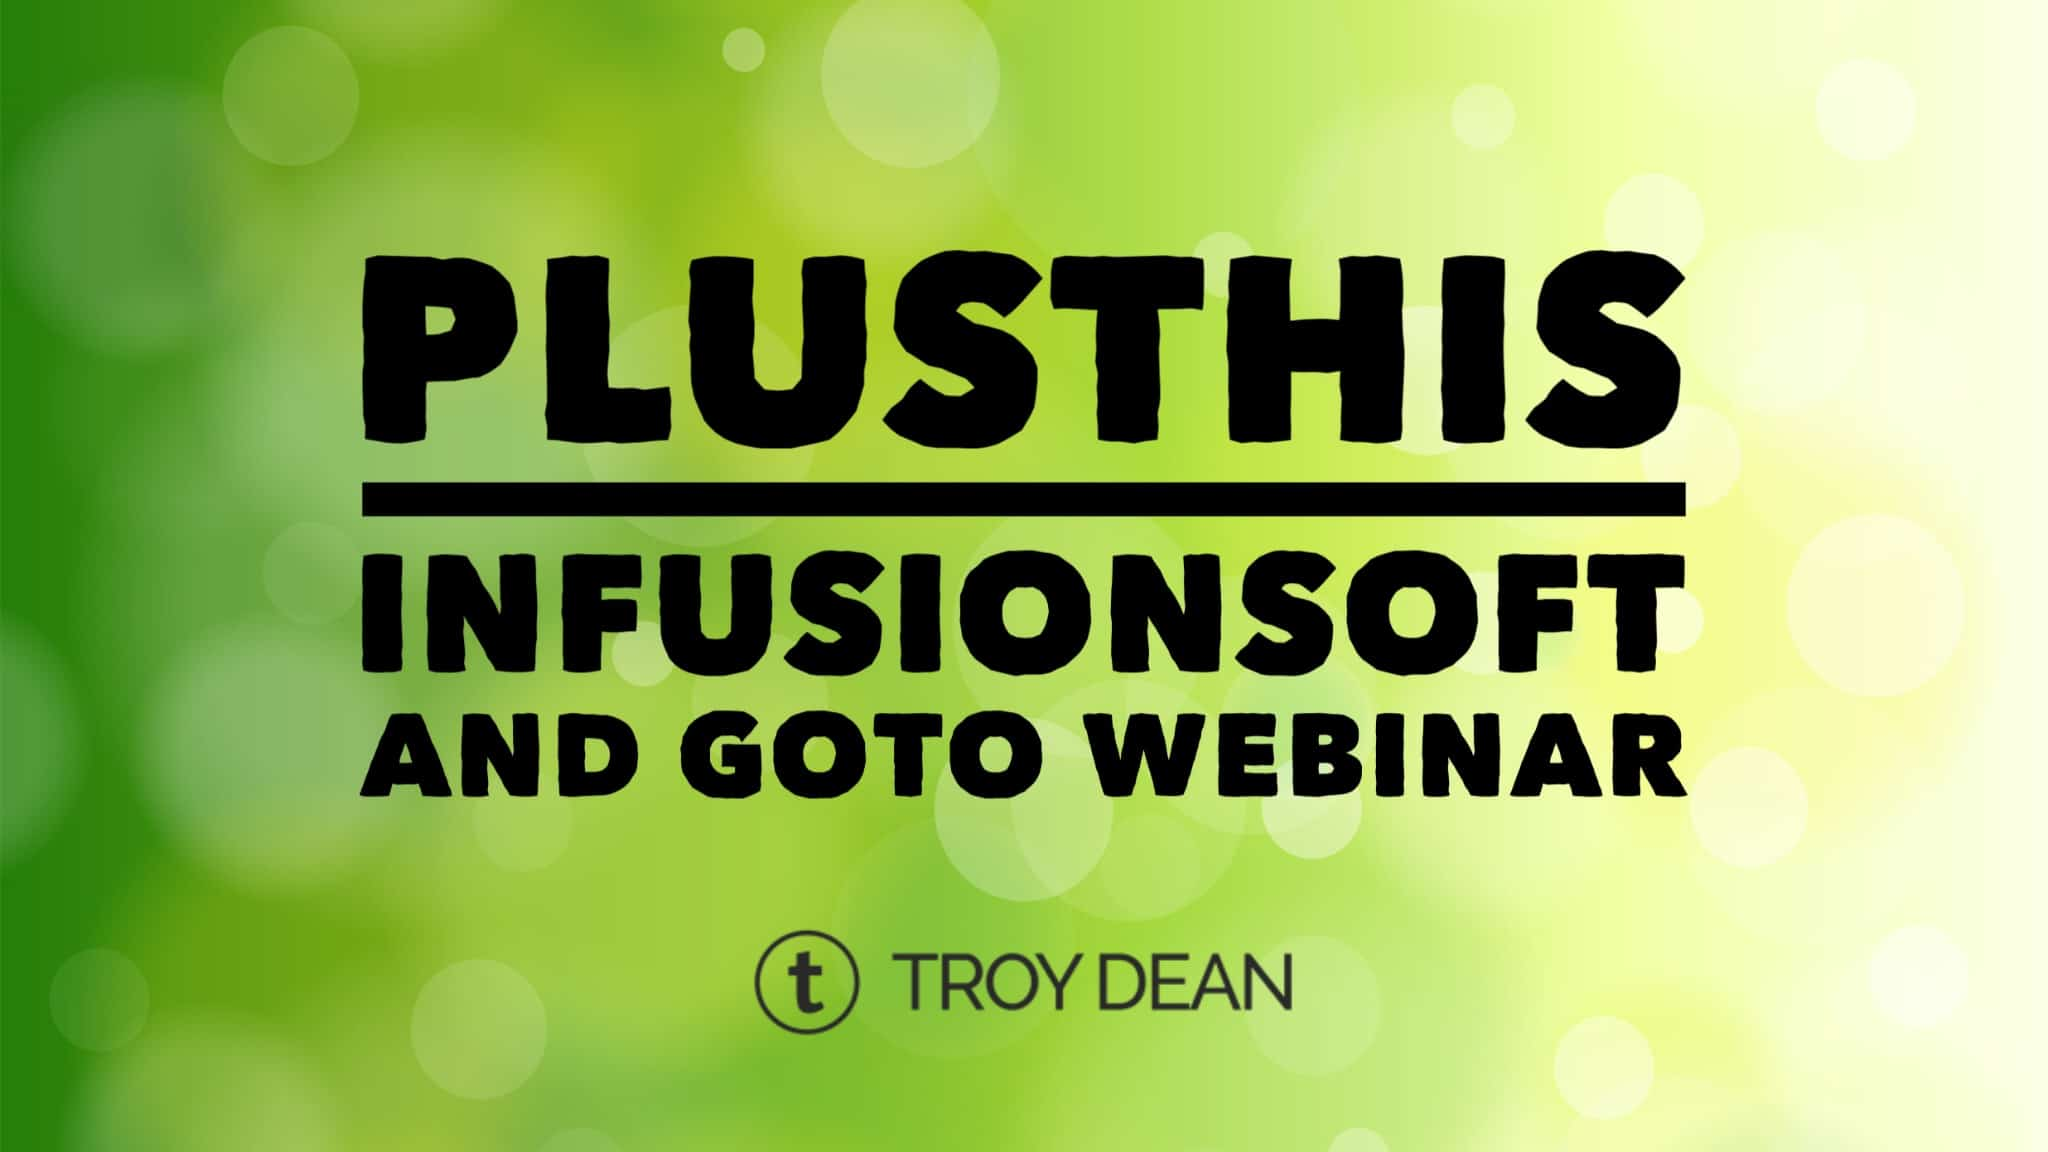 plusthis, infusionsoft and goto webinar